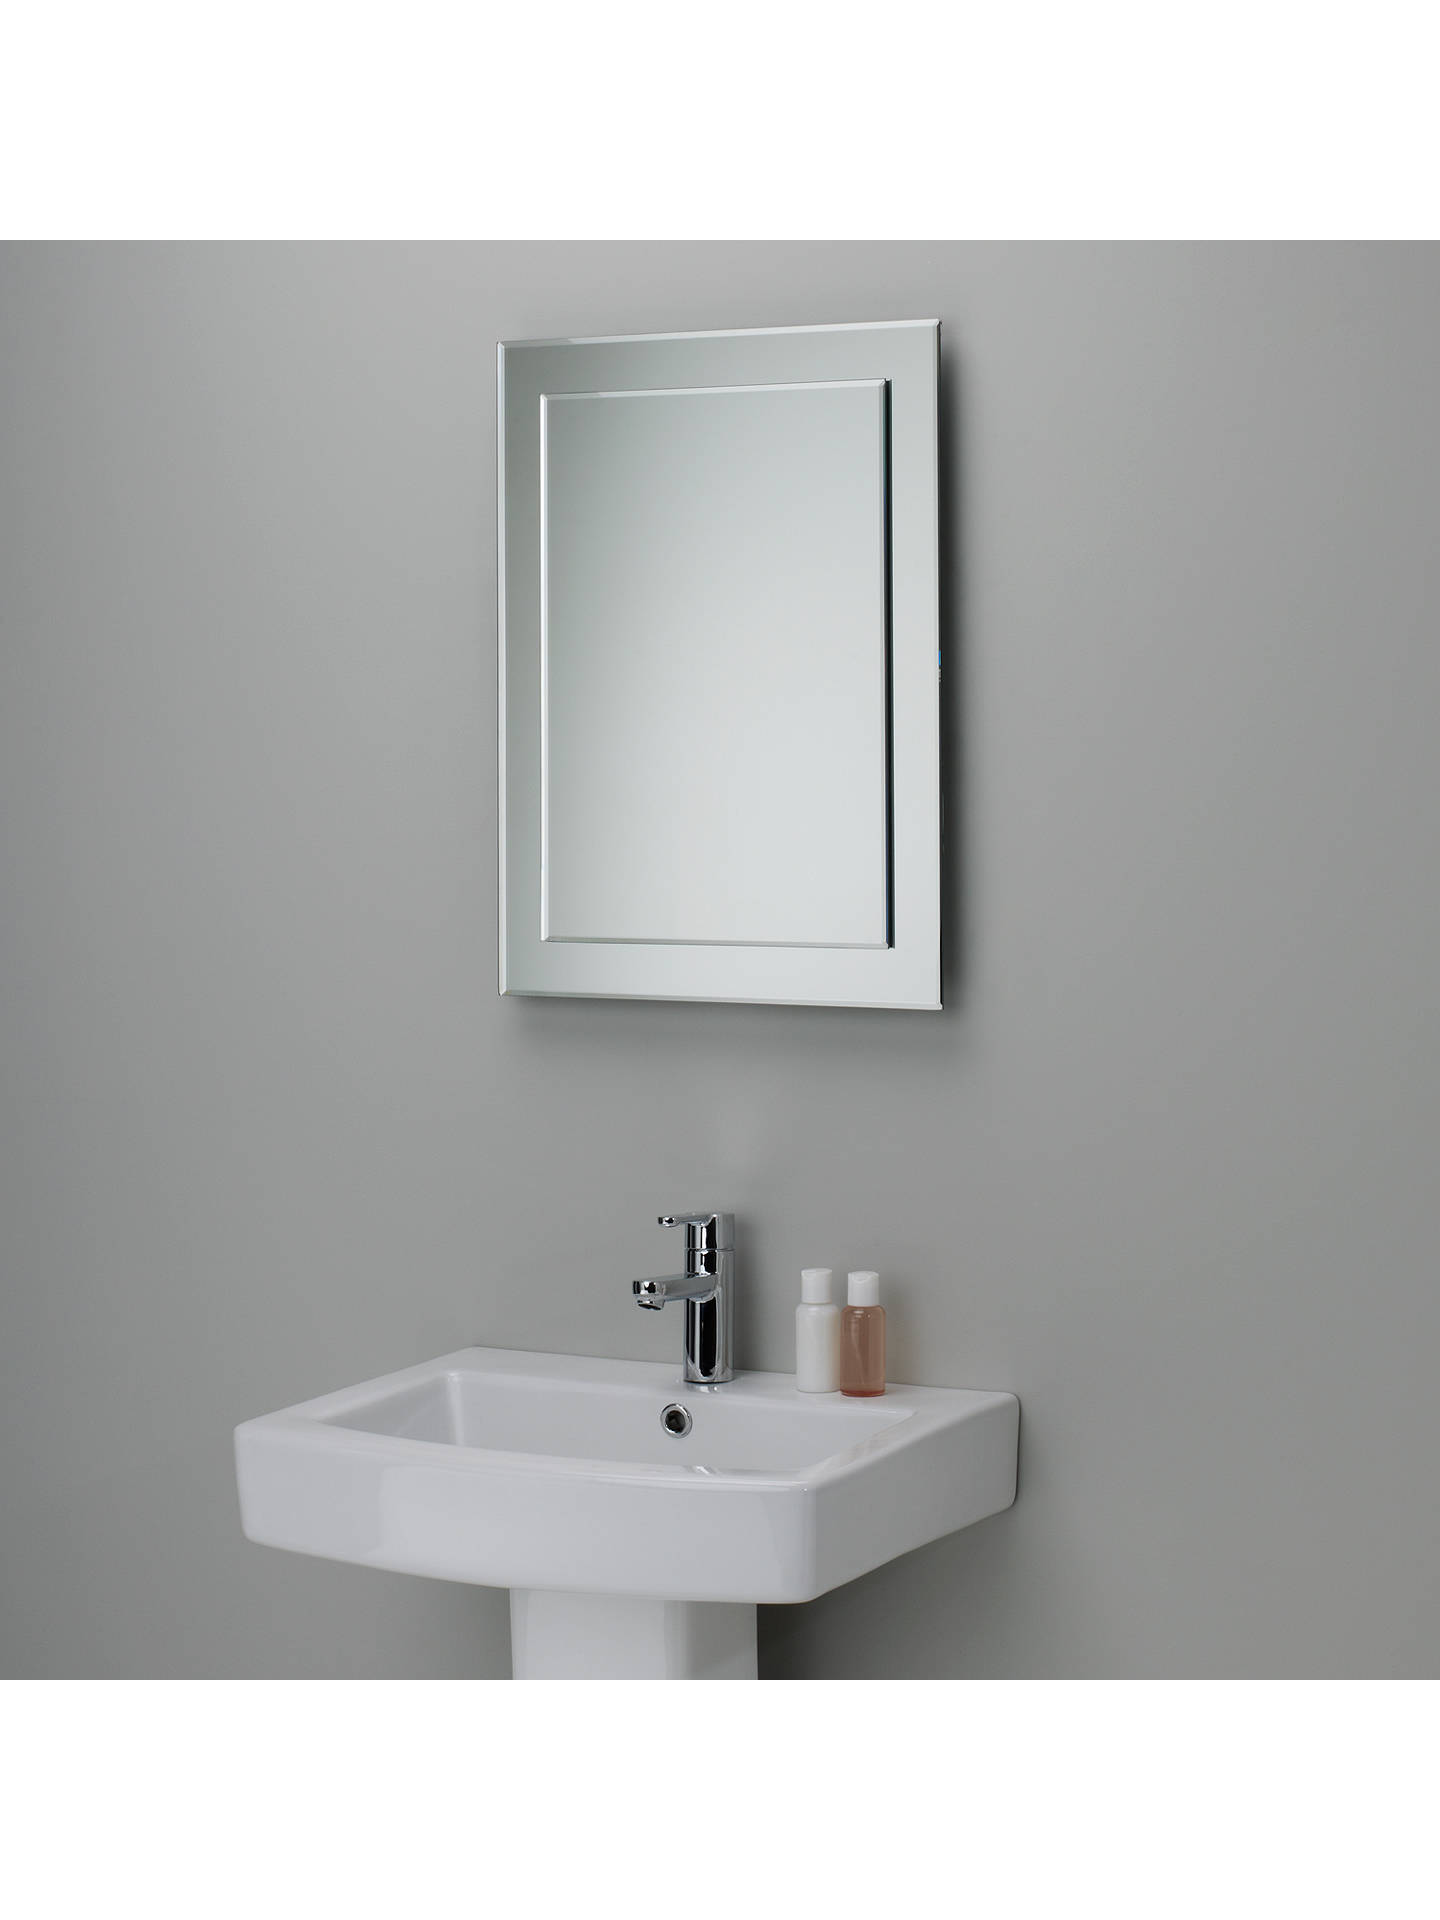 john lewis partners duo wall bathroom mirror 60 x 45cm. Black Bedroom Furniture Sets. Home Design Ideas